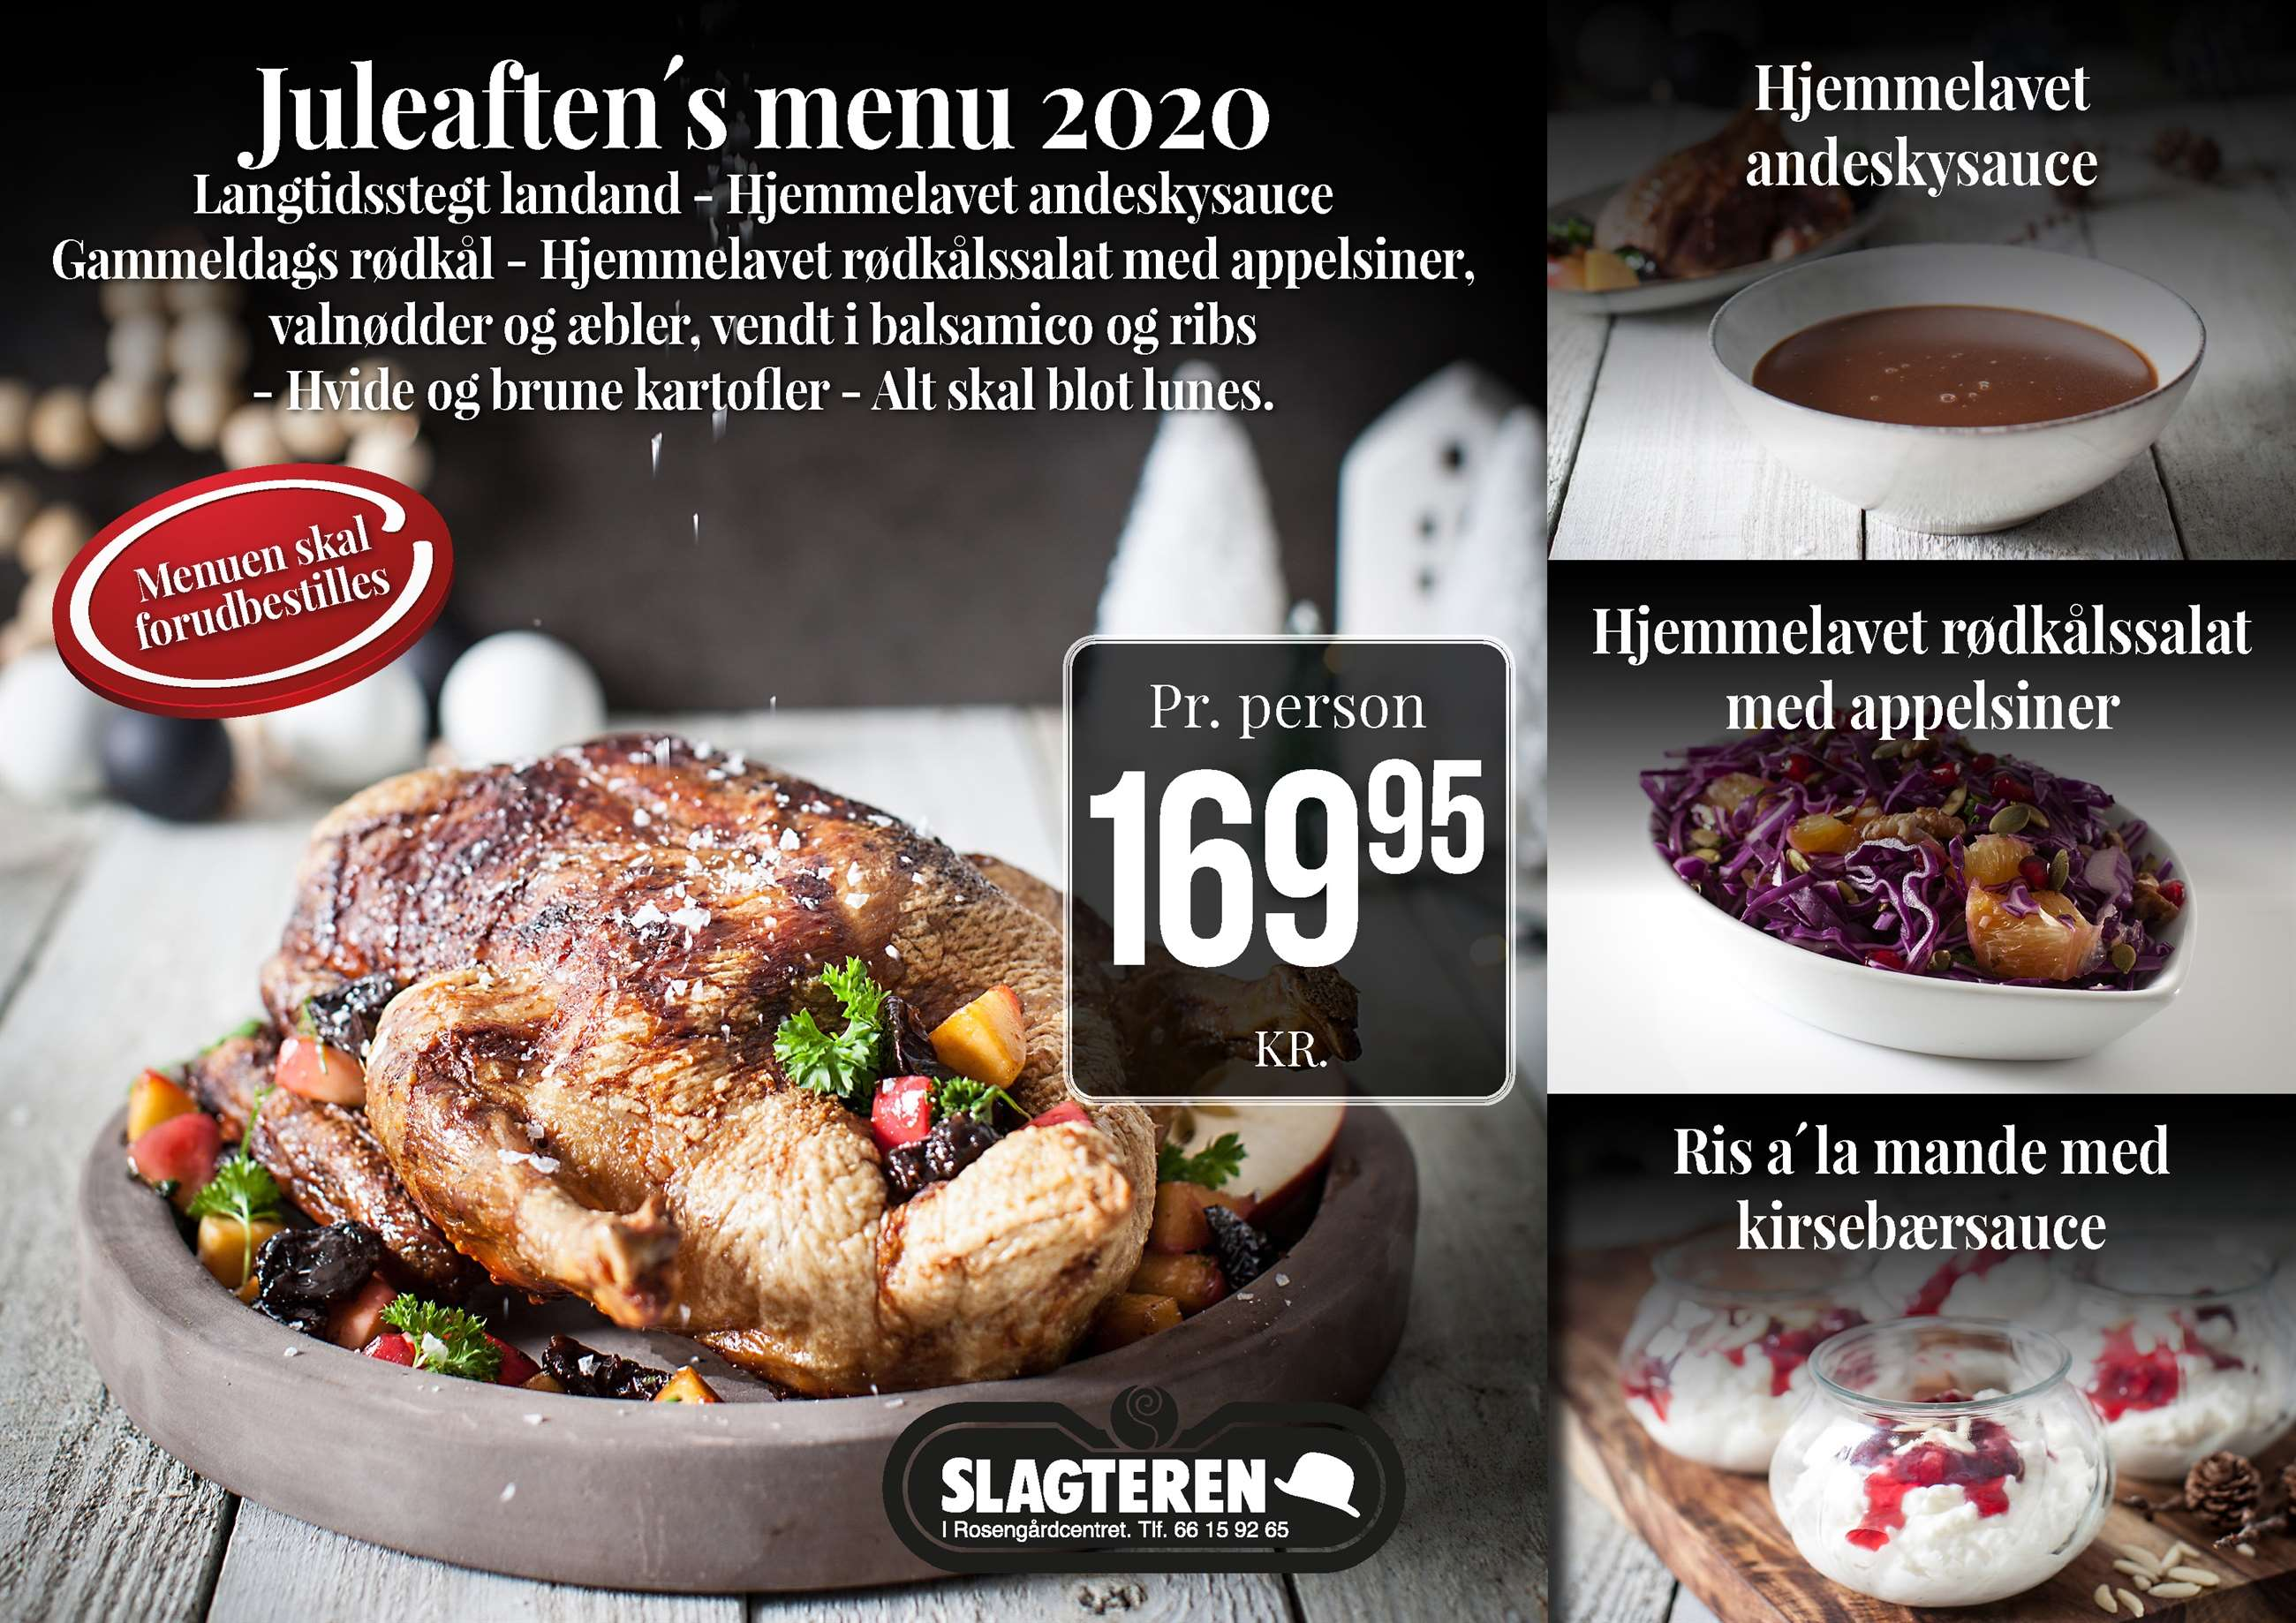 340010001_jule_aftens_menu_a4